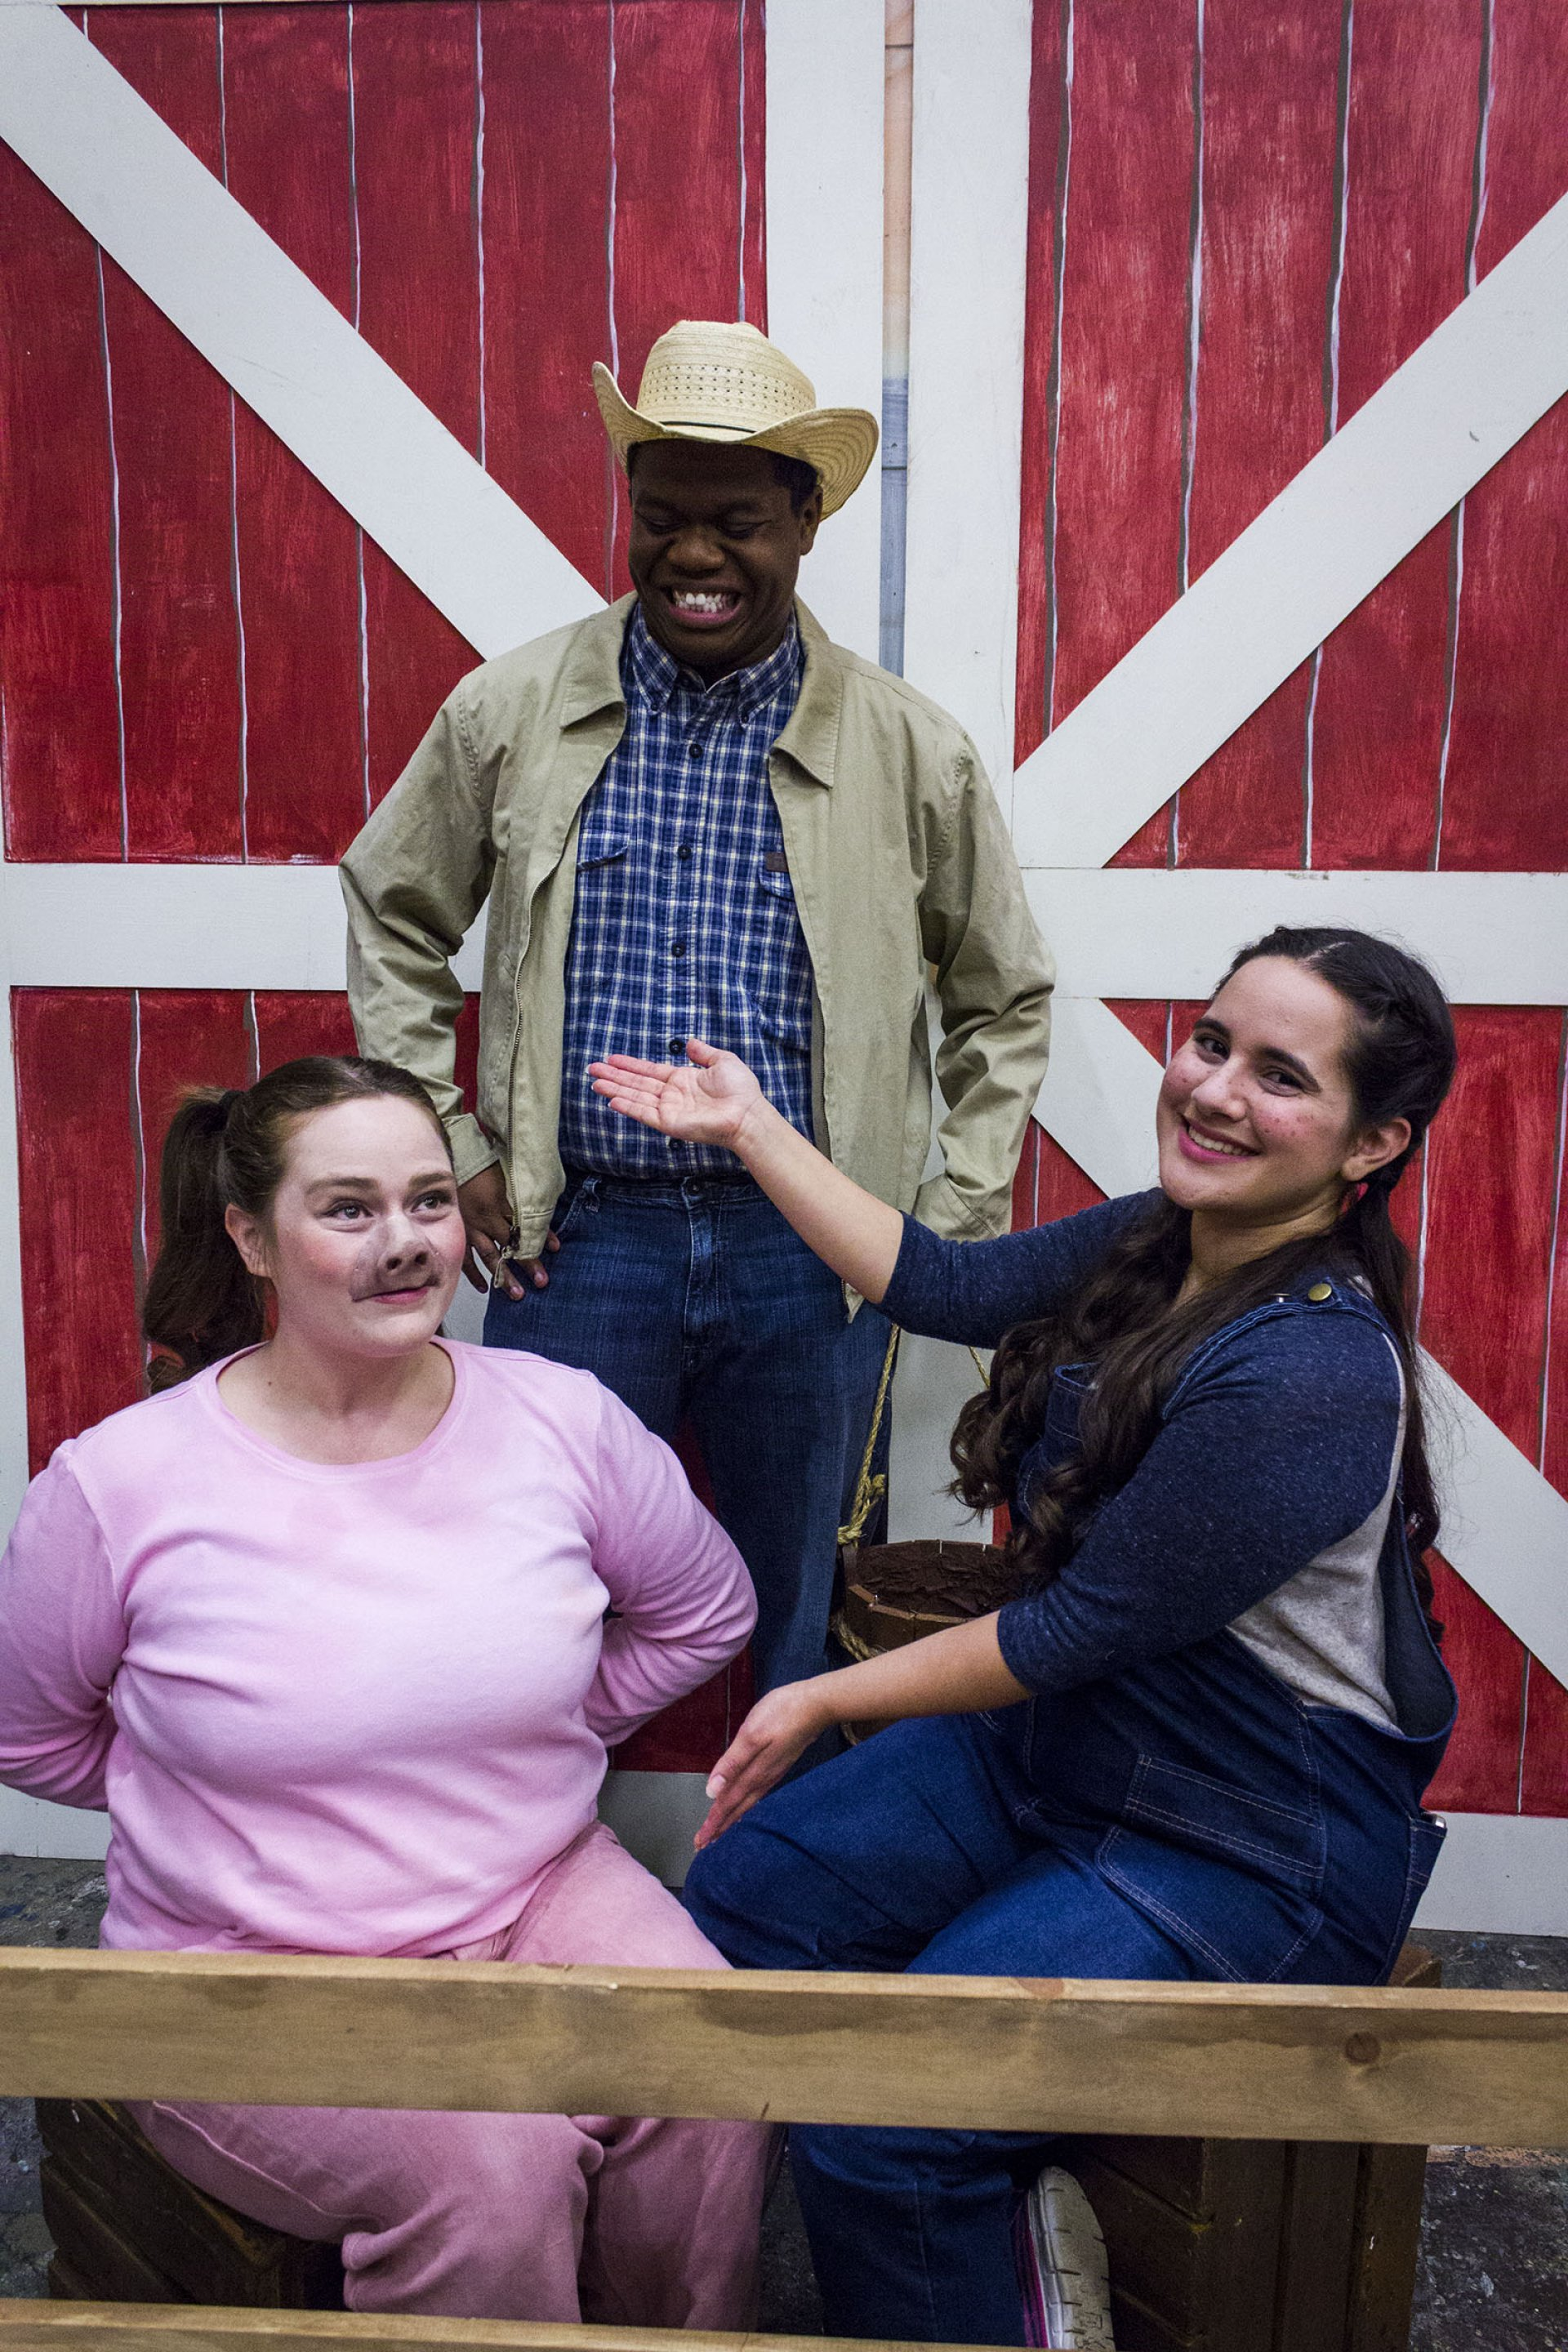 From left to right: Wilbur (played by HSU alumnus Catlin Hatfield), Homer Zuckerman (played by HSU student Isaiah Alexander) and Fern (played by HSU communications and theater arts major Isabella Ceja). Photo by Heather Karns.